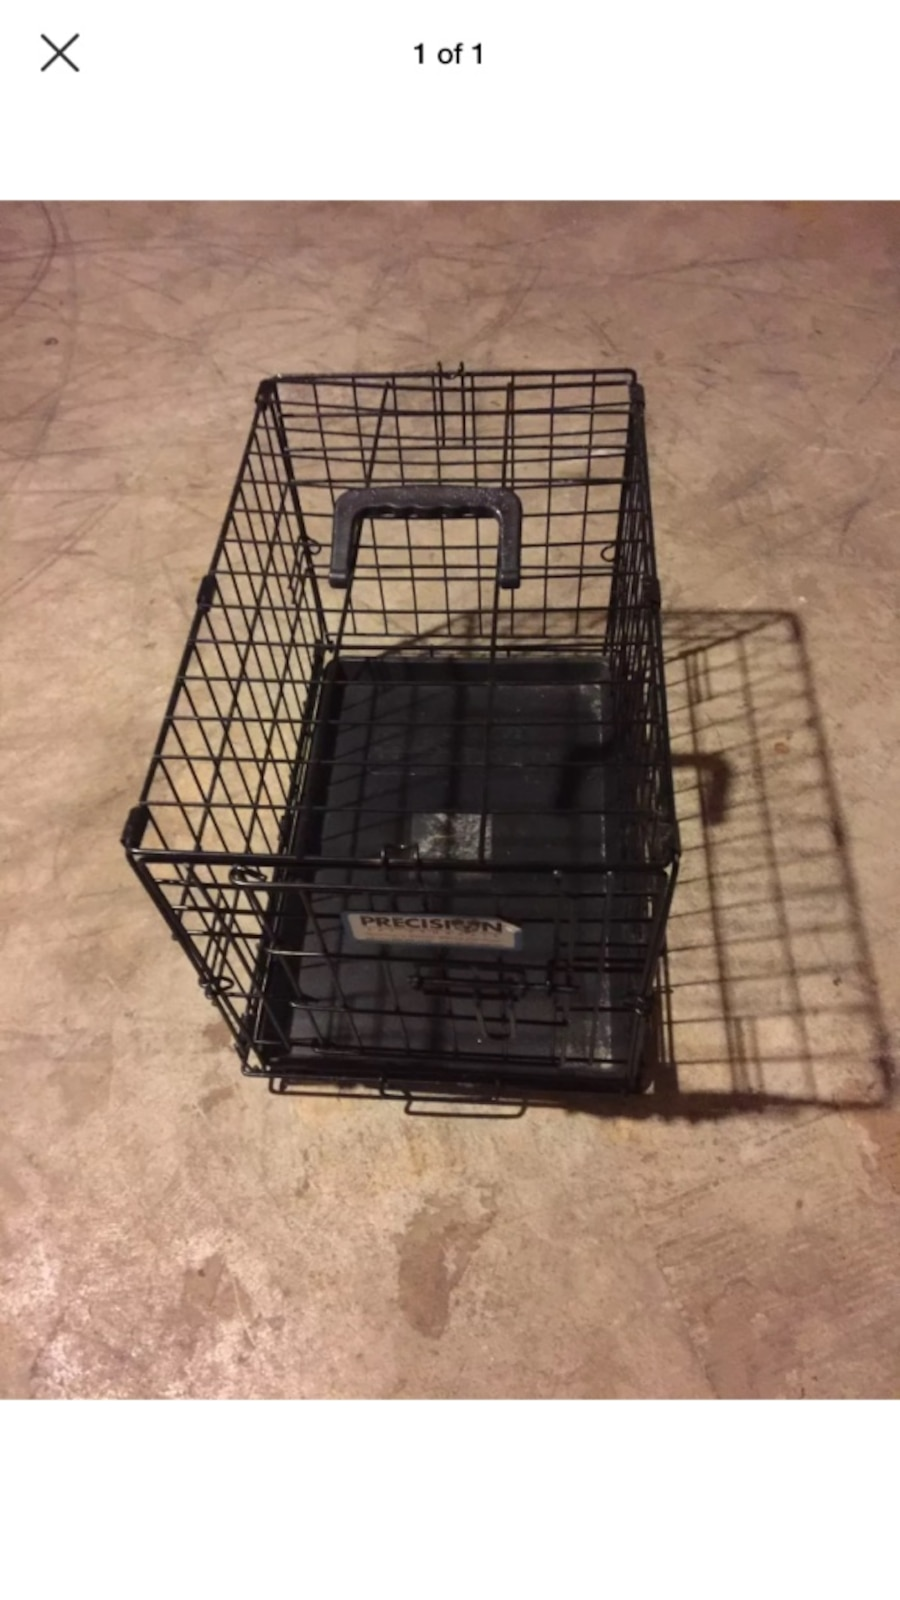 letgo  extra small dog crate in butler wi - extra small dog crate